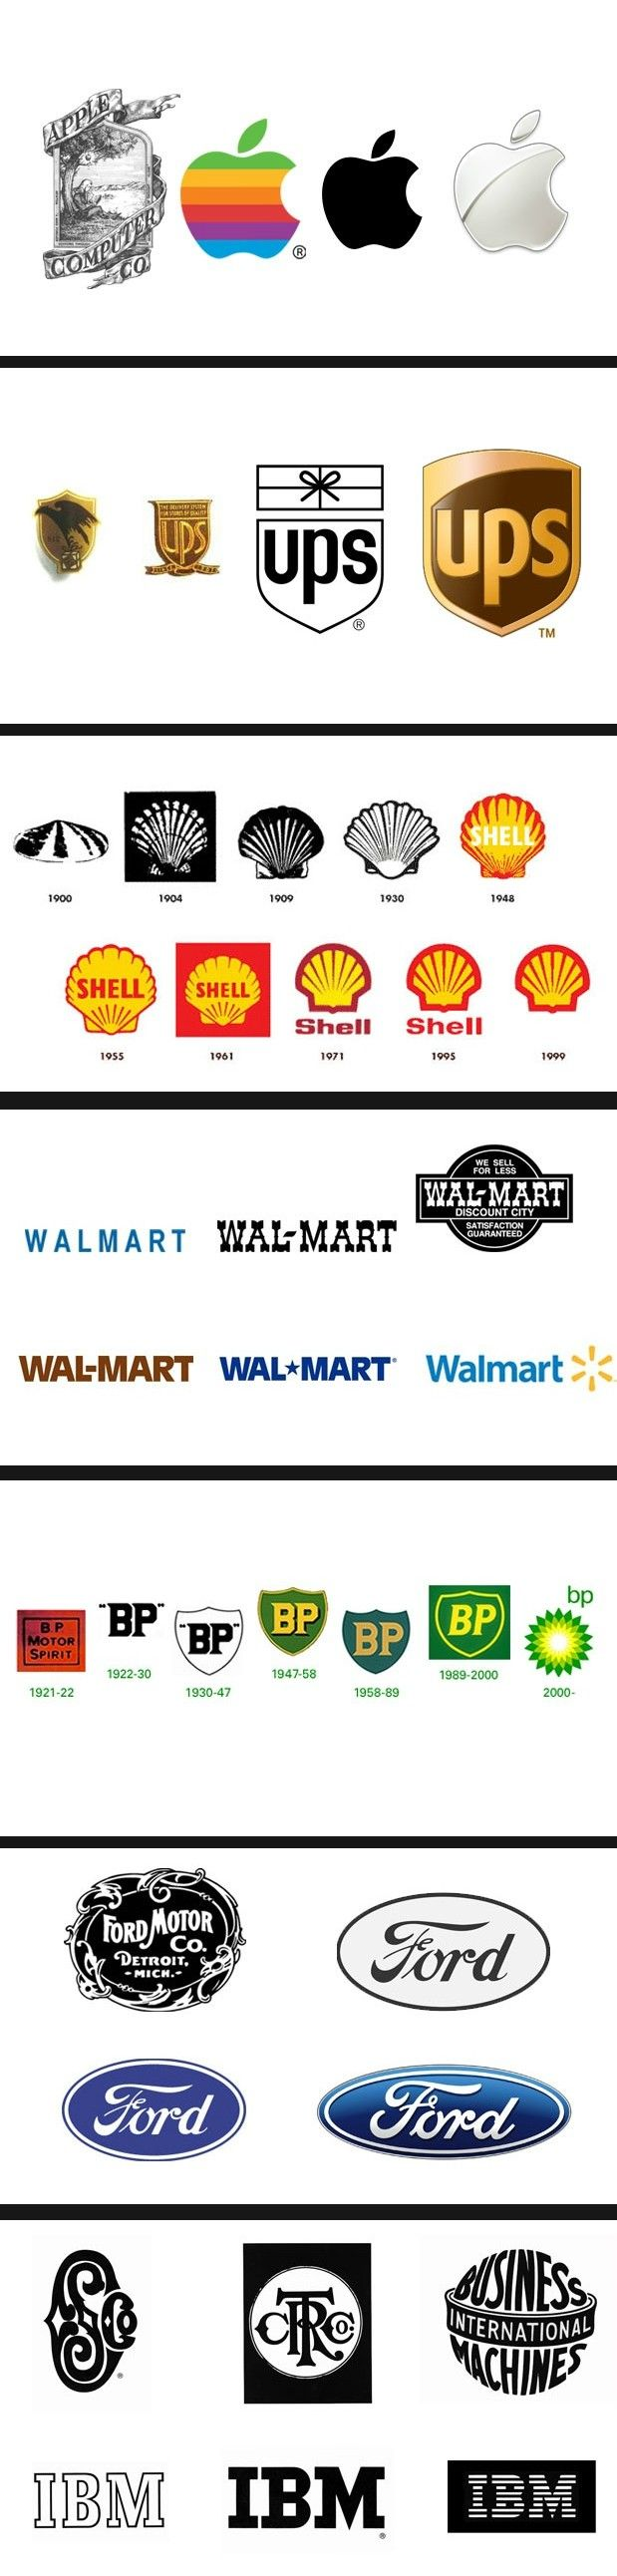 the evolution of corporate logos (US)